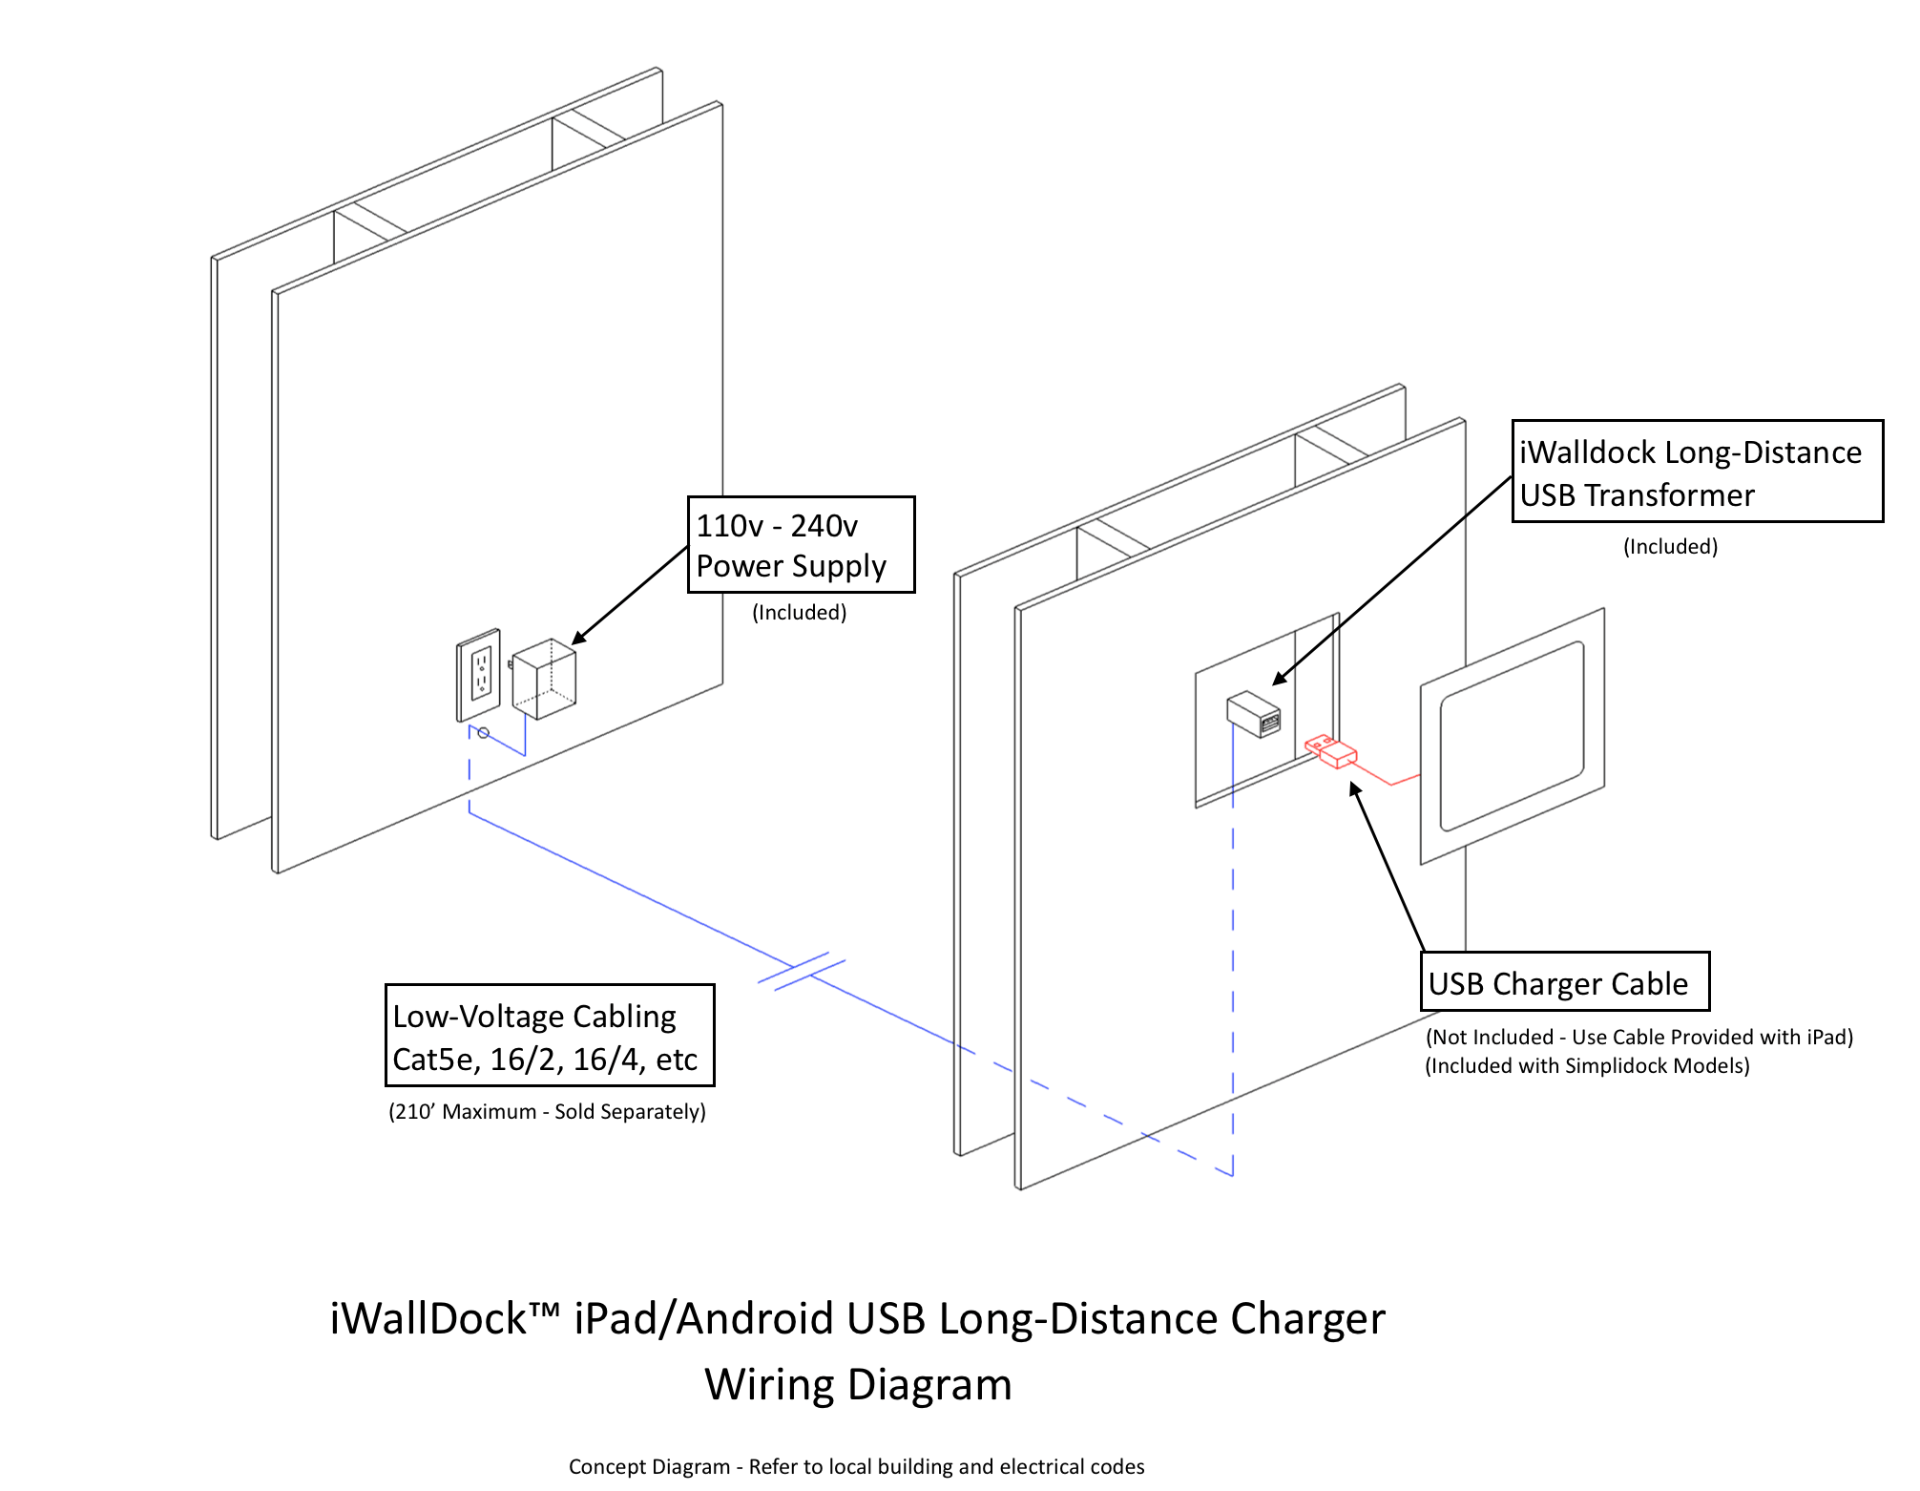 iwalldock™ 2 wire usb charging kit simple battery charger wiring diagram iwalldock™ 2 wire usb charging kit in wall tablet mount dock